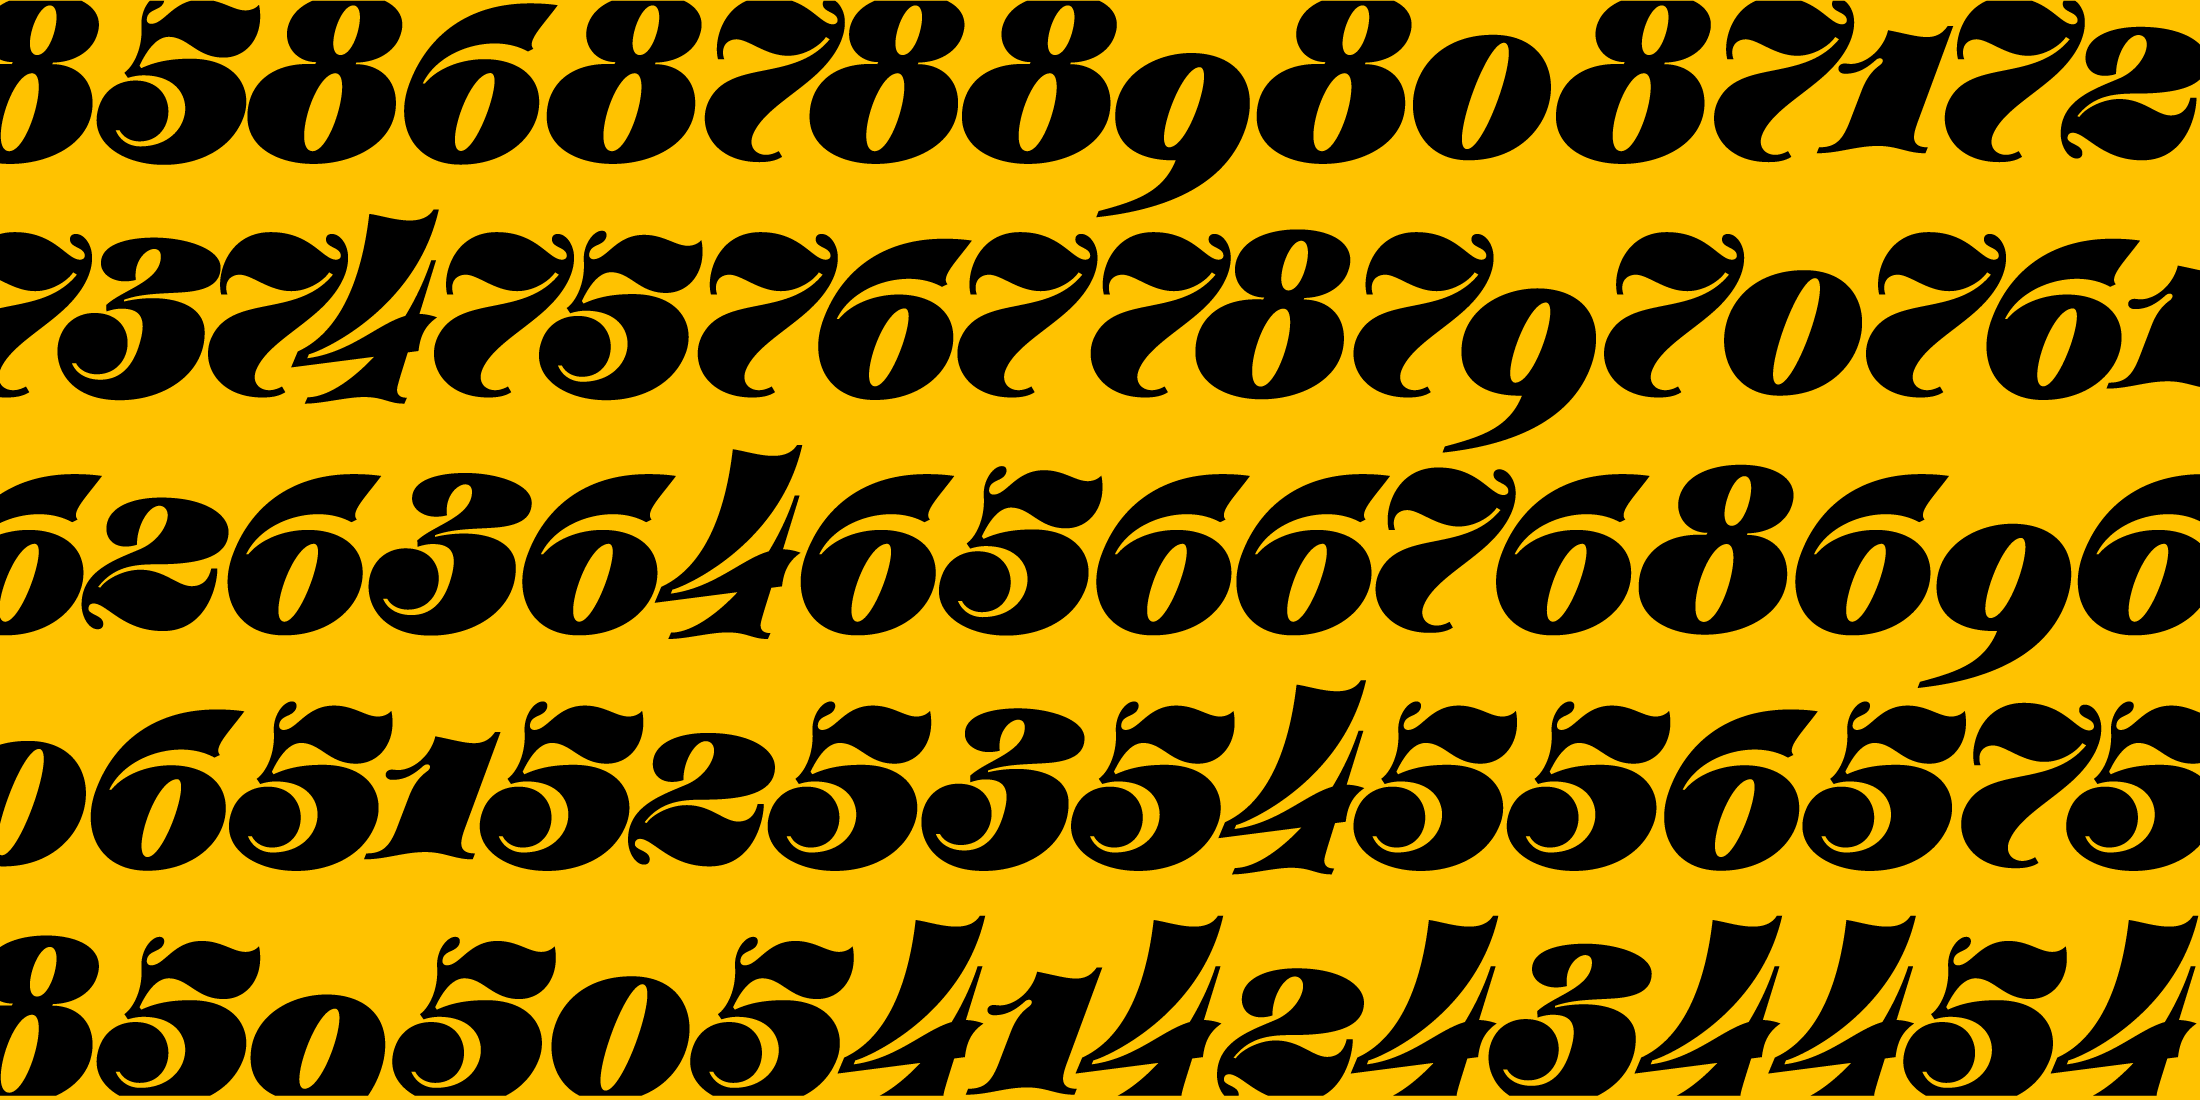 Robu Display, a new italic didone typeface designed by Andrei Robu. Available on www.typeverything.com